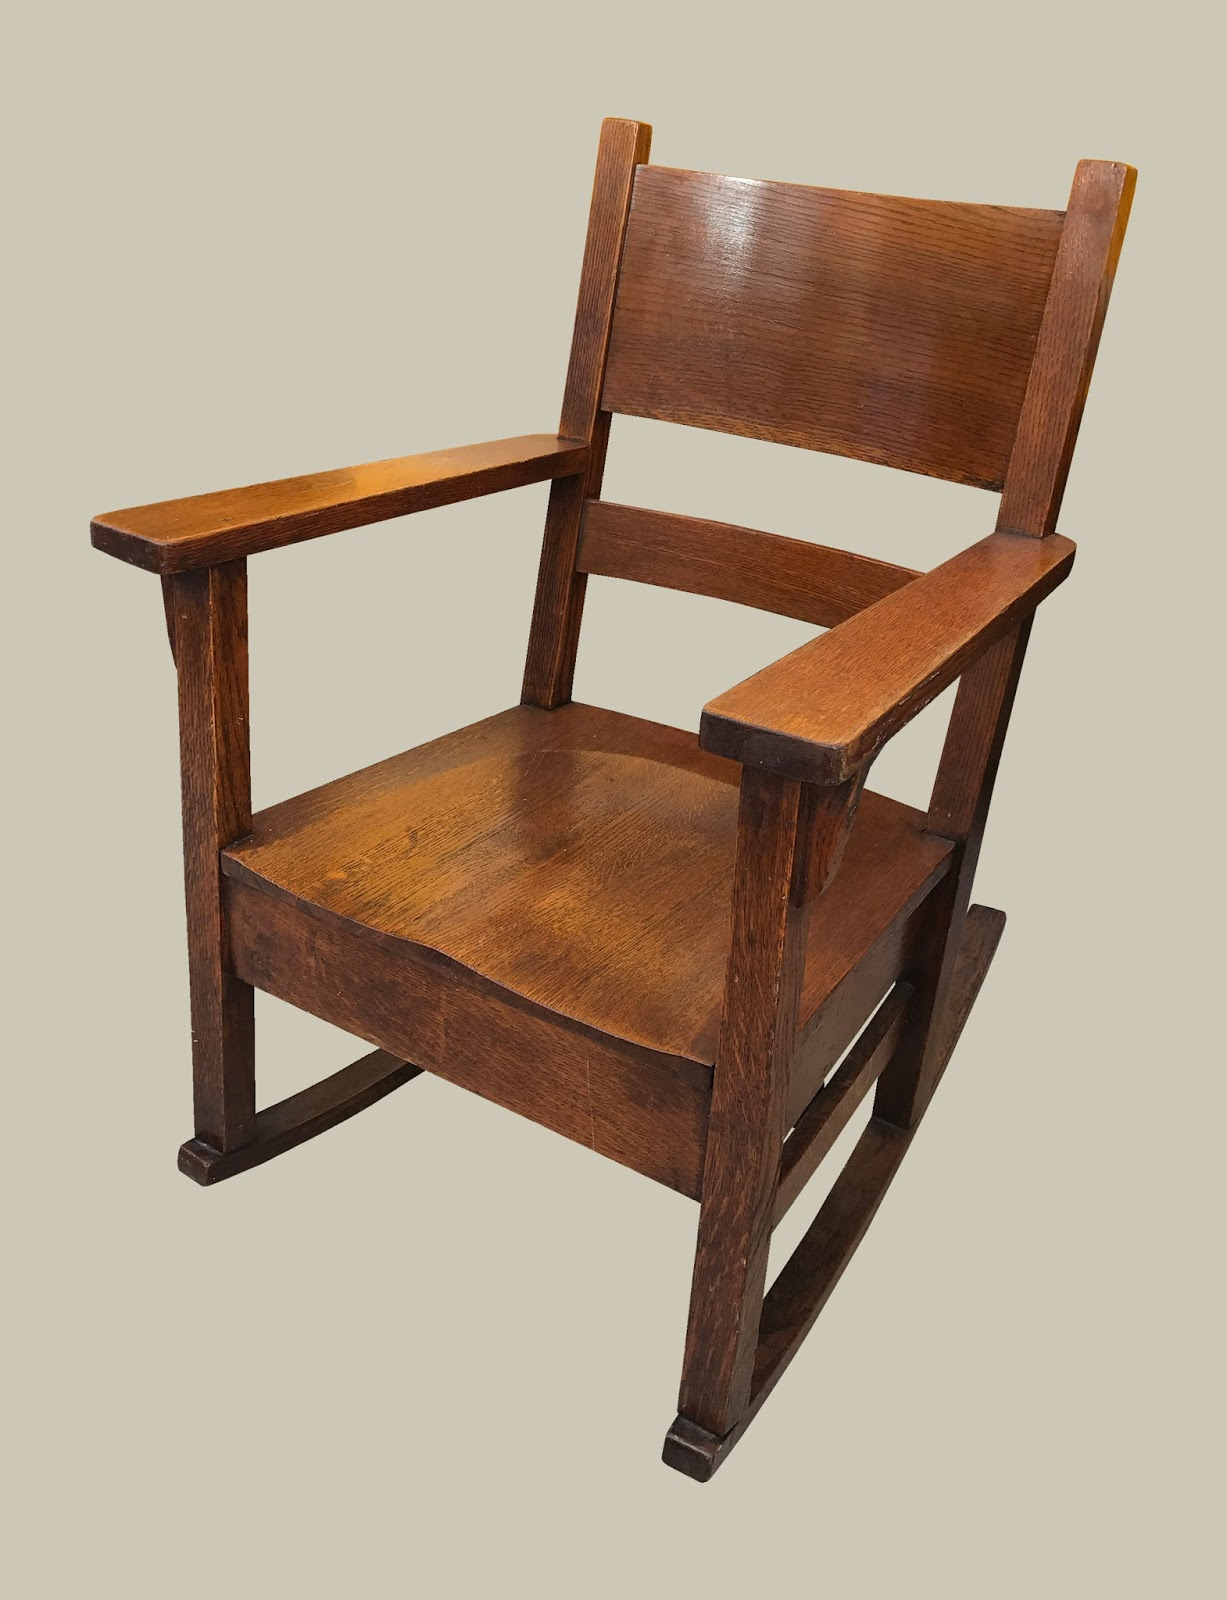 Rocking Chair Soldes Uhuru Furniture And Collectibles Rocking Chair 125 Sold